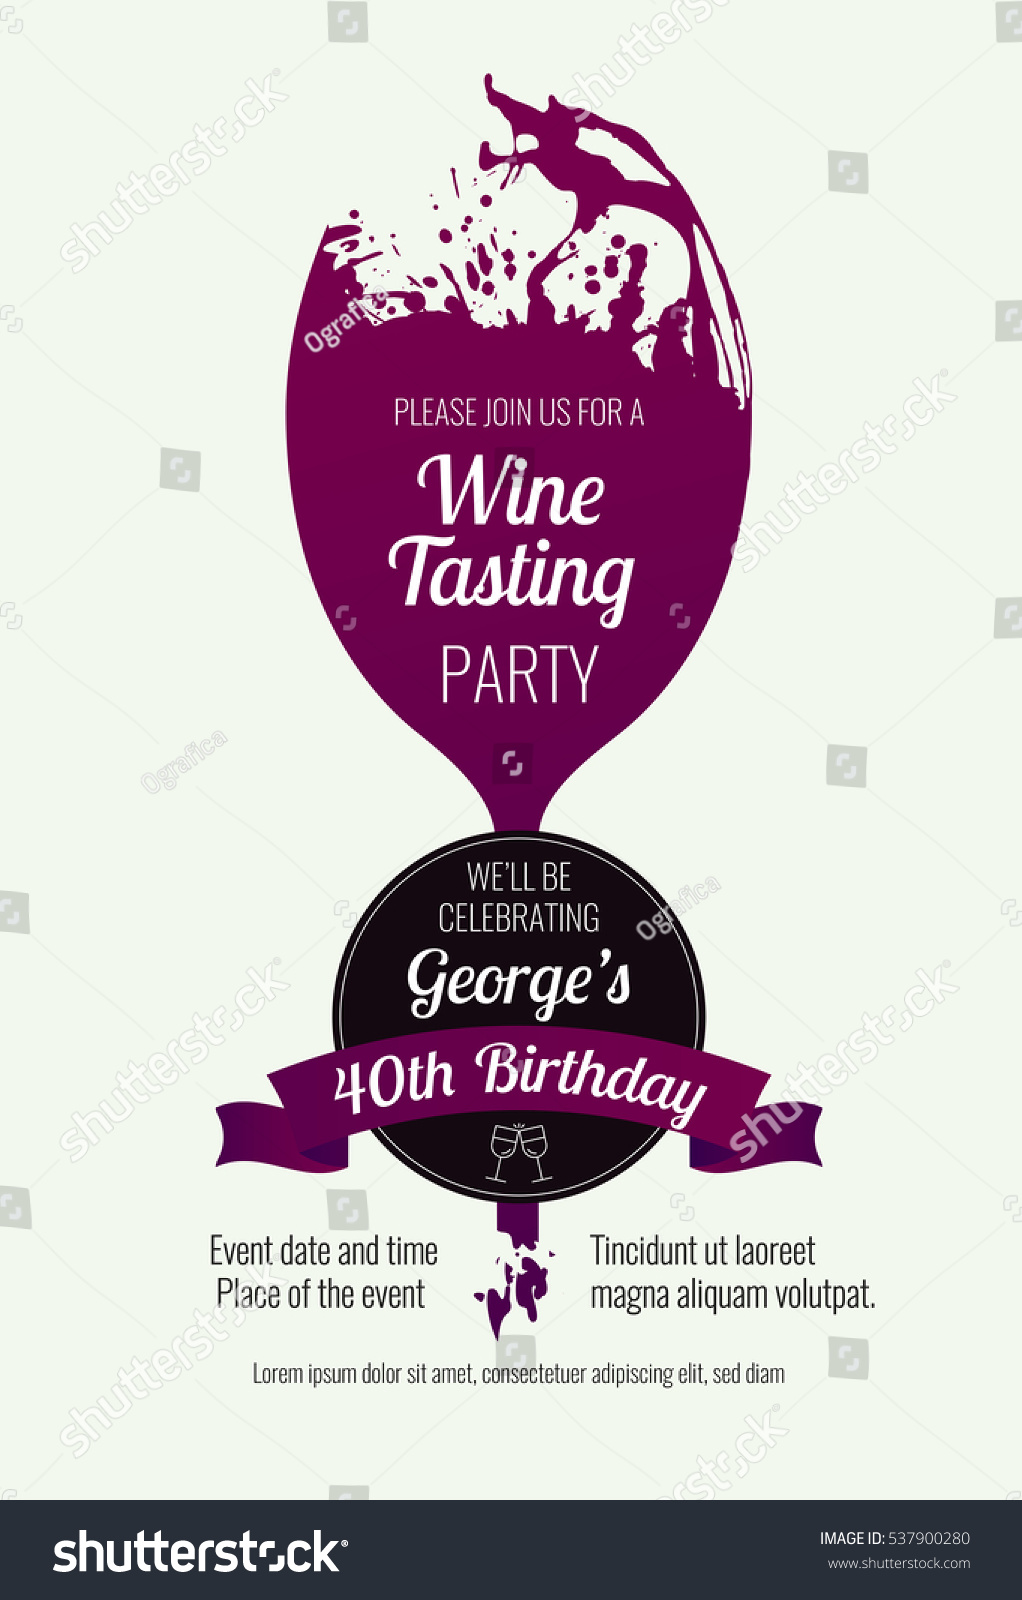 Invitation template event party wine promotion stock vector royalty invitation template for event party or wine promotion suitable for tasting events parties stopboris Choice Image